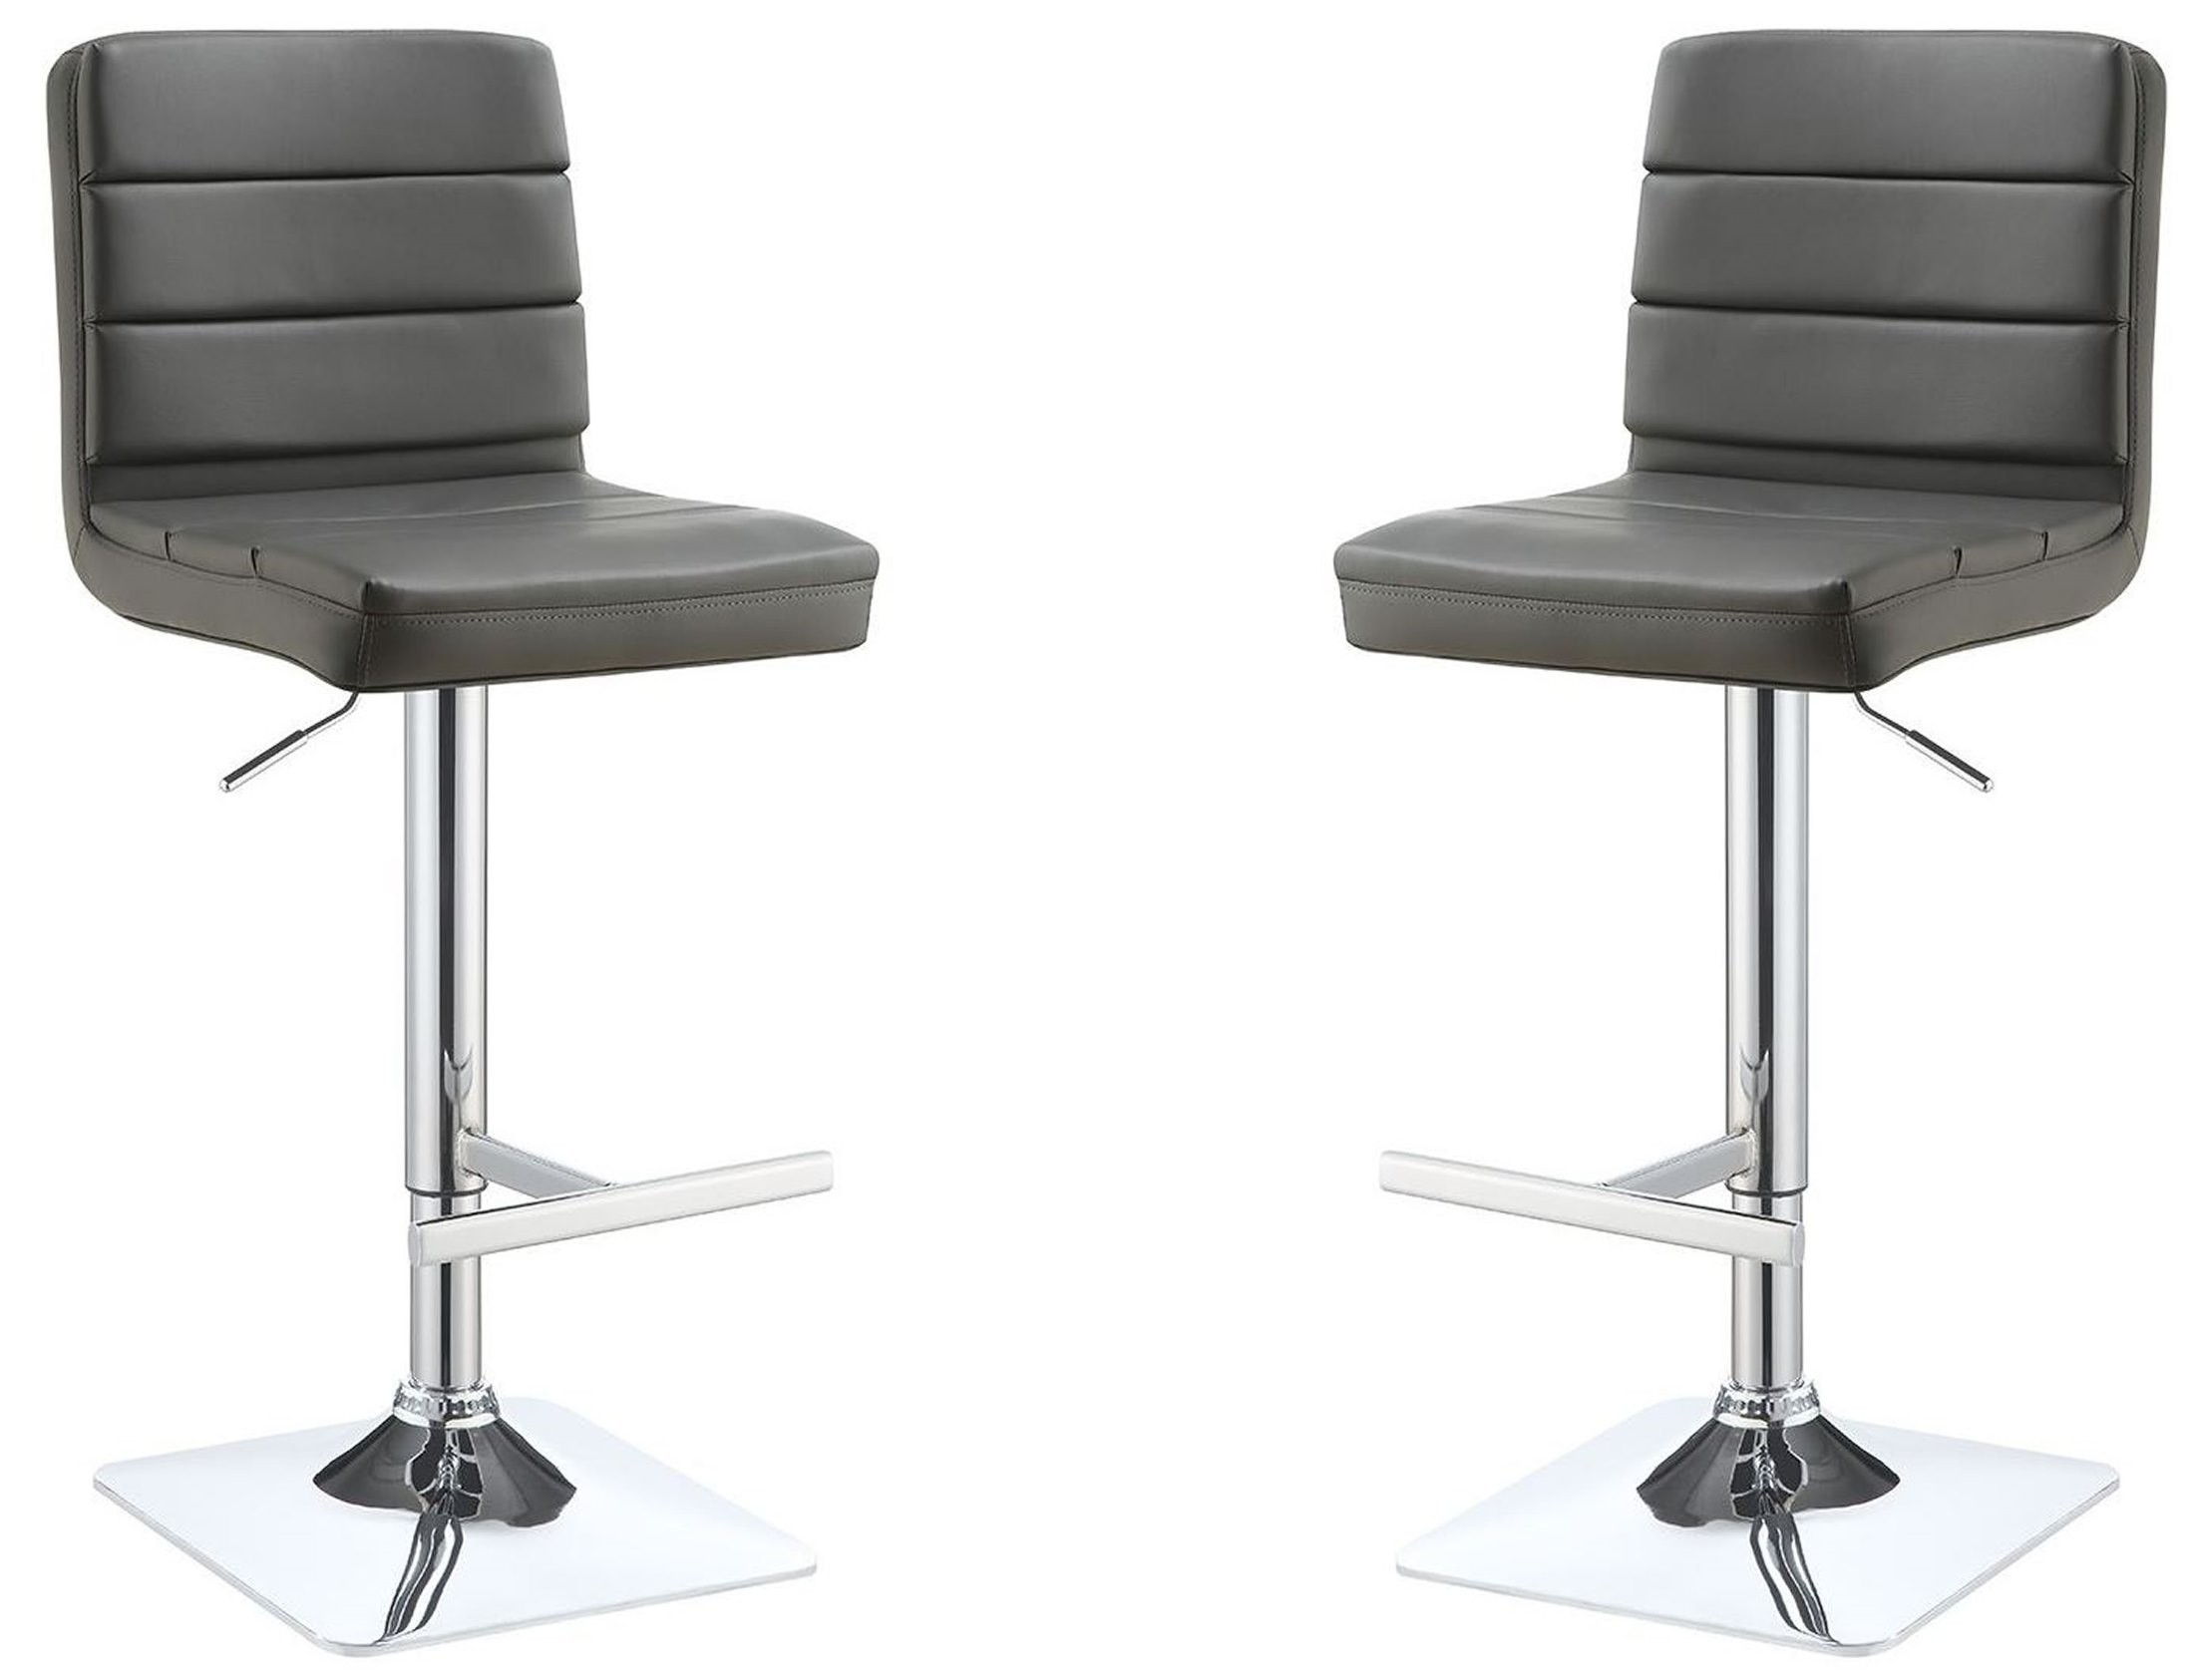 Grey Adjustable Bar Stool Set of 2 from Coaster 120696  : 120696 b1 from colemanfurniture.com size 2200 x 1685 jpeg 195kB